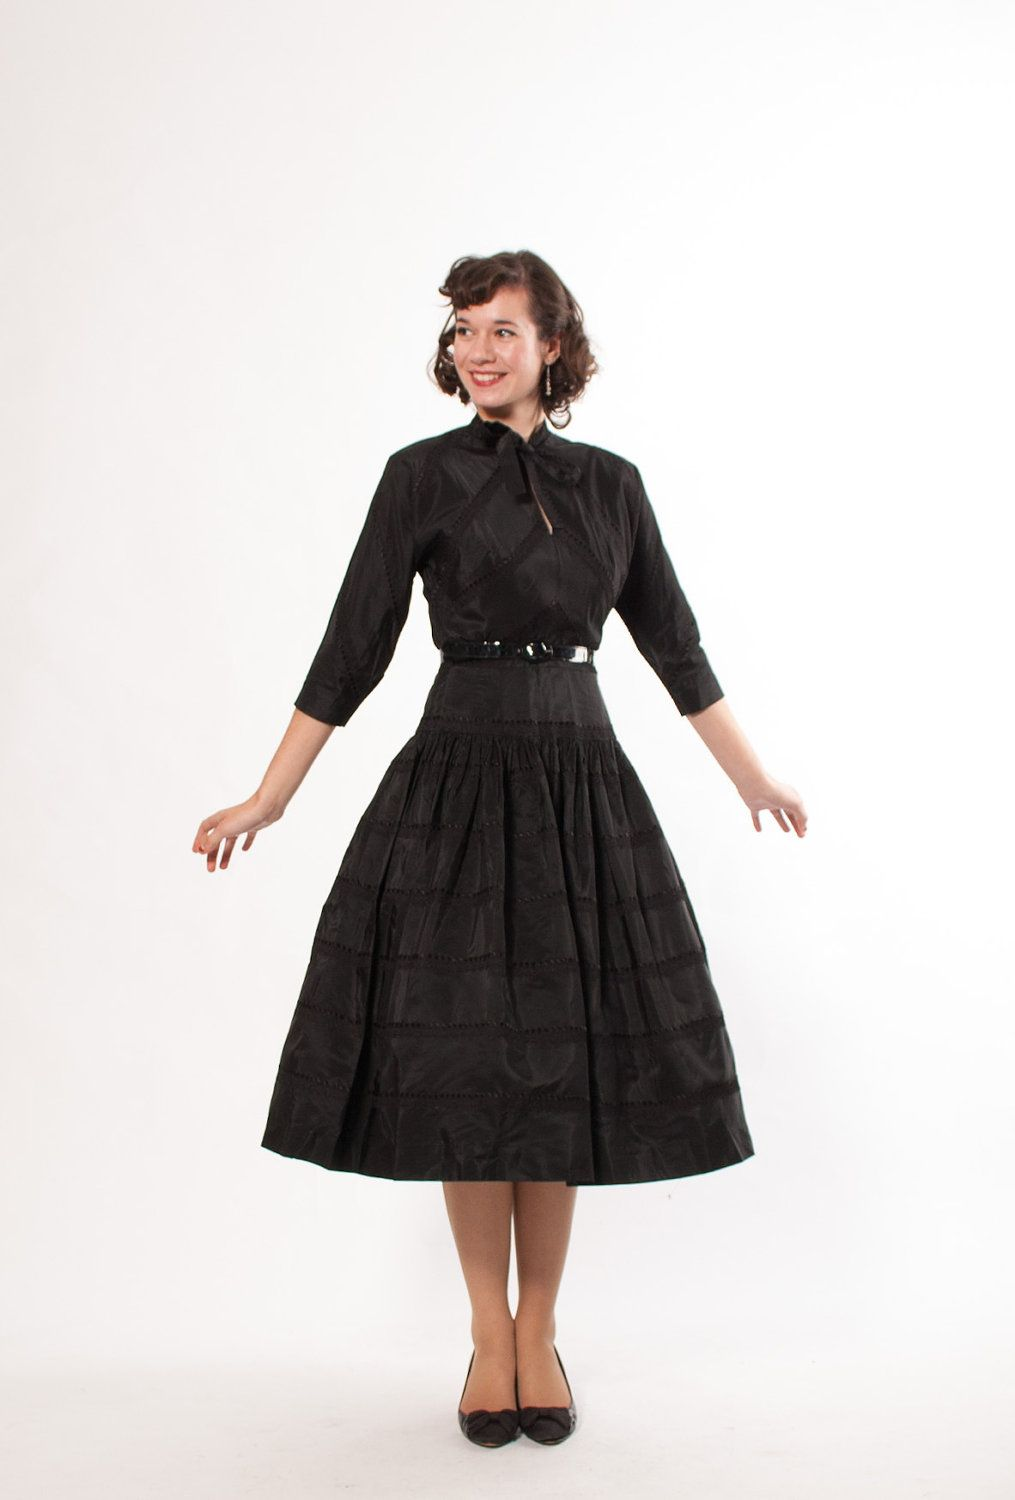 50s styles are great for the hourglass check out this embroidered 50s styles are great for the hourglass check out this embroidered black taffeta dress floridaeventfo Image collections